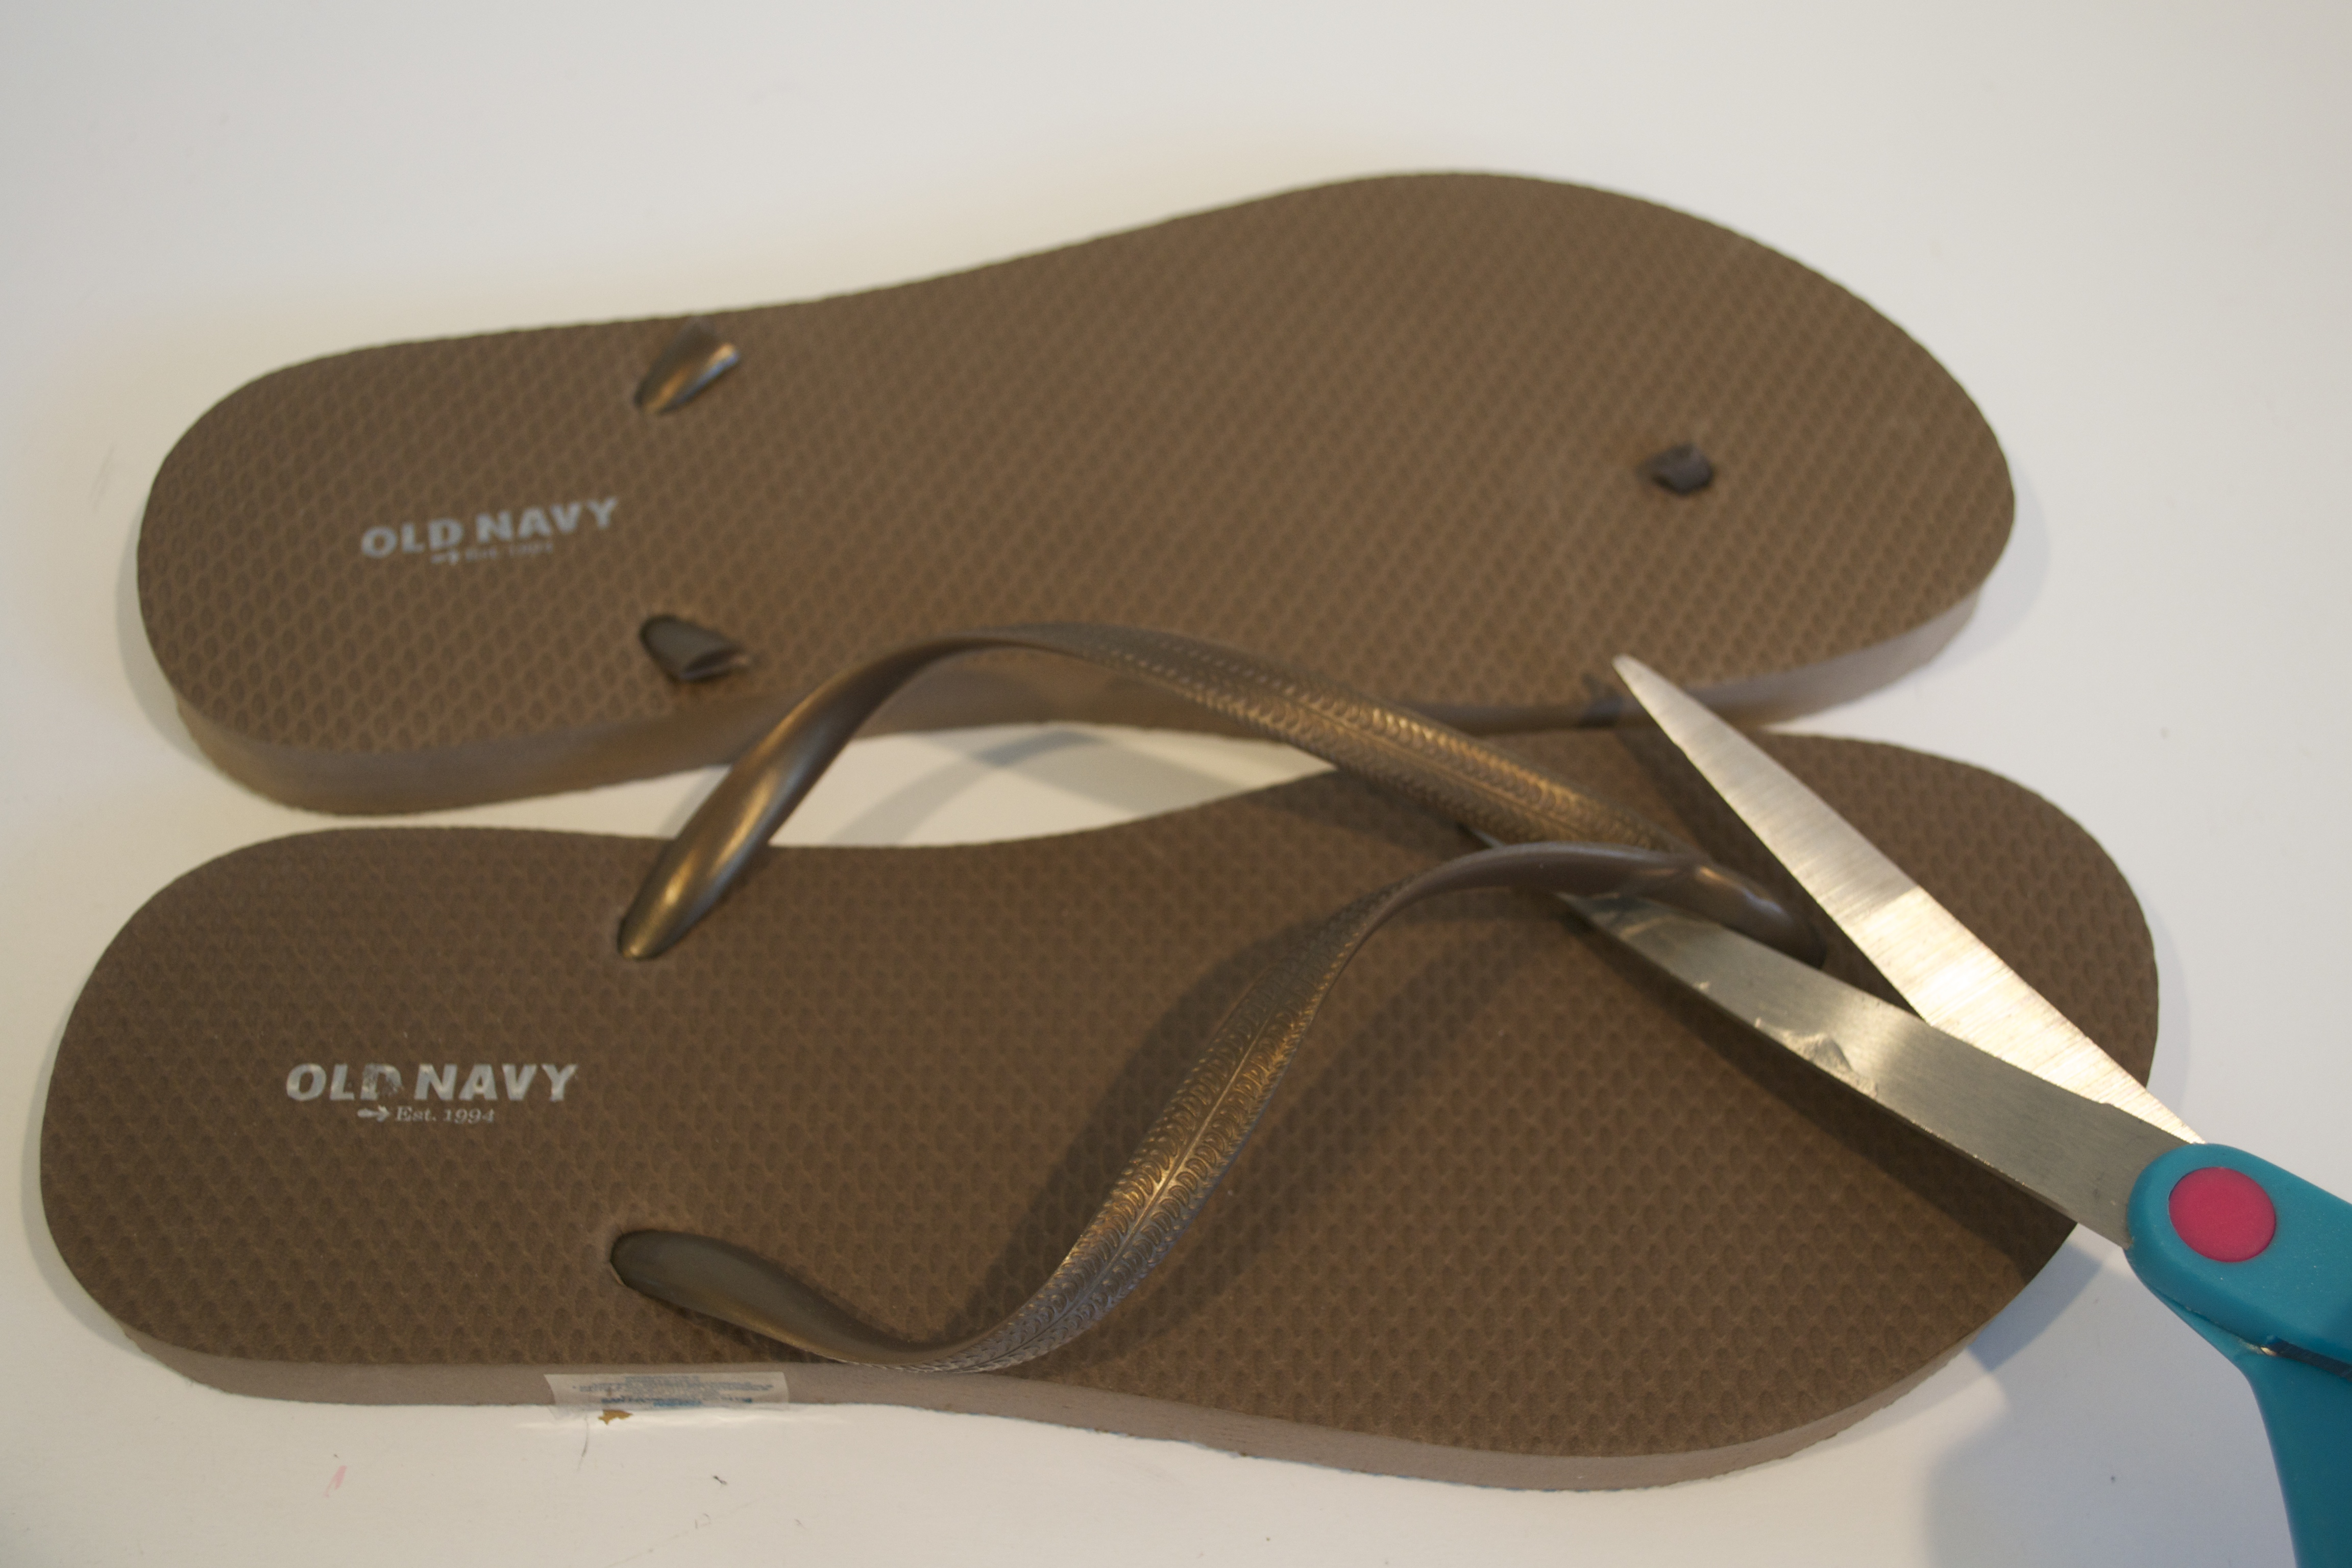 Diy Sandals How To Get The Expensive Look For Less Miss Bizi Bee